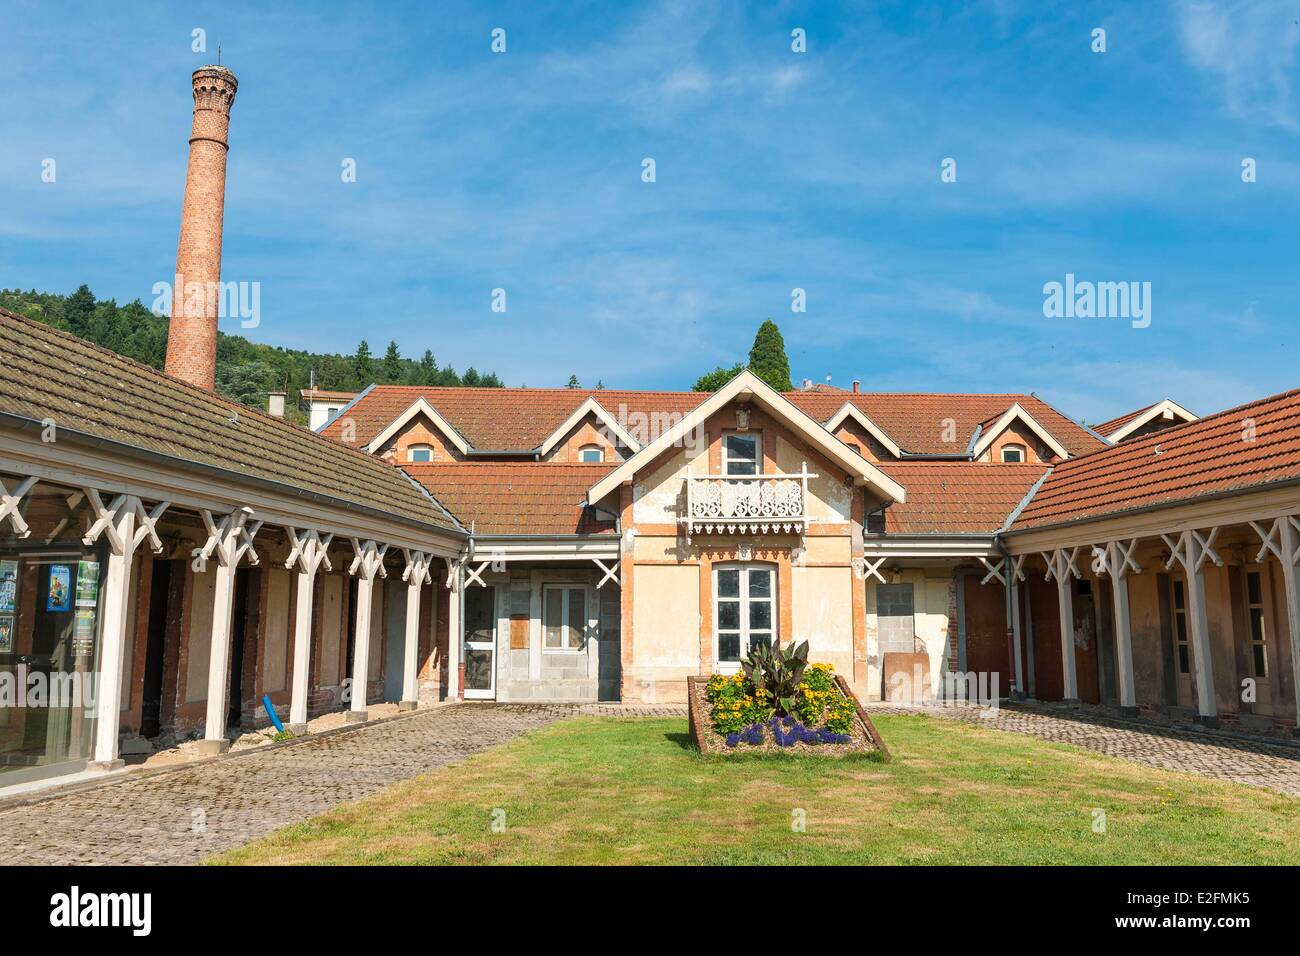 France Loire Sail sous Couzan village nestled at the foot of the Monts du Forez the former public bathhouse - Stock Image